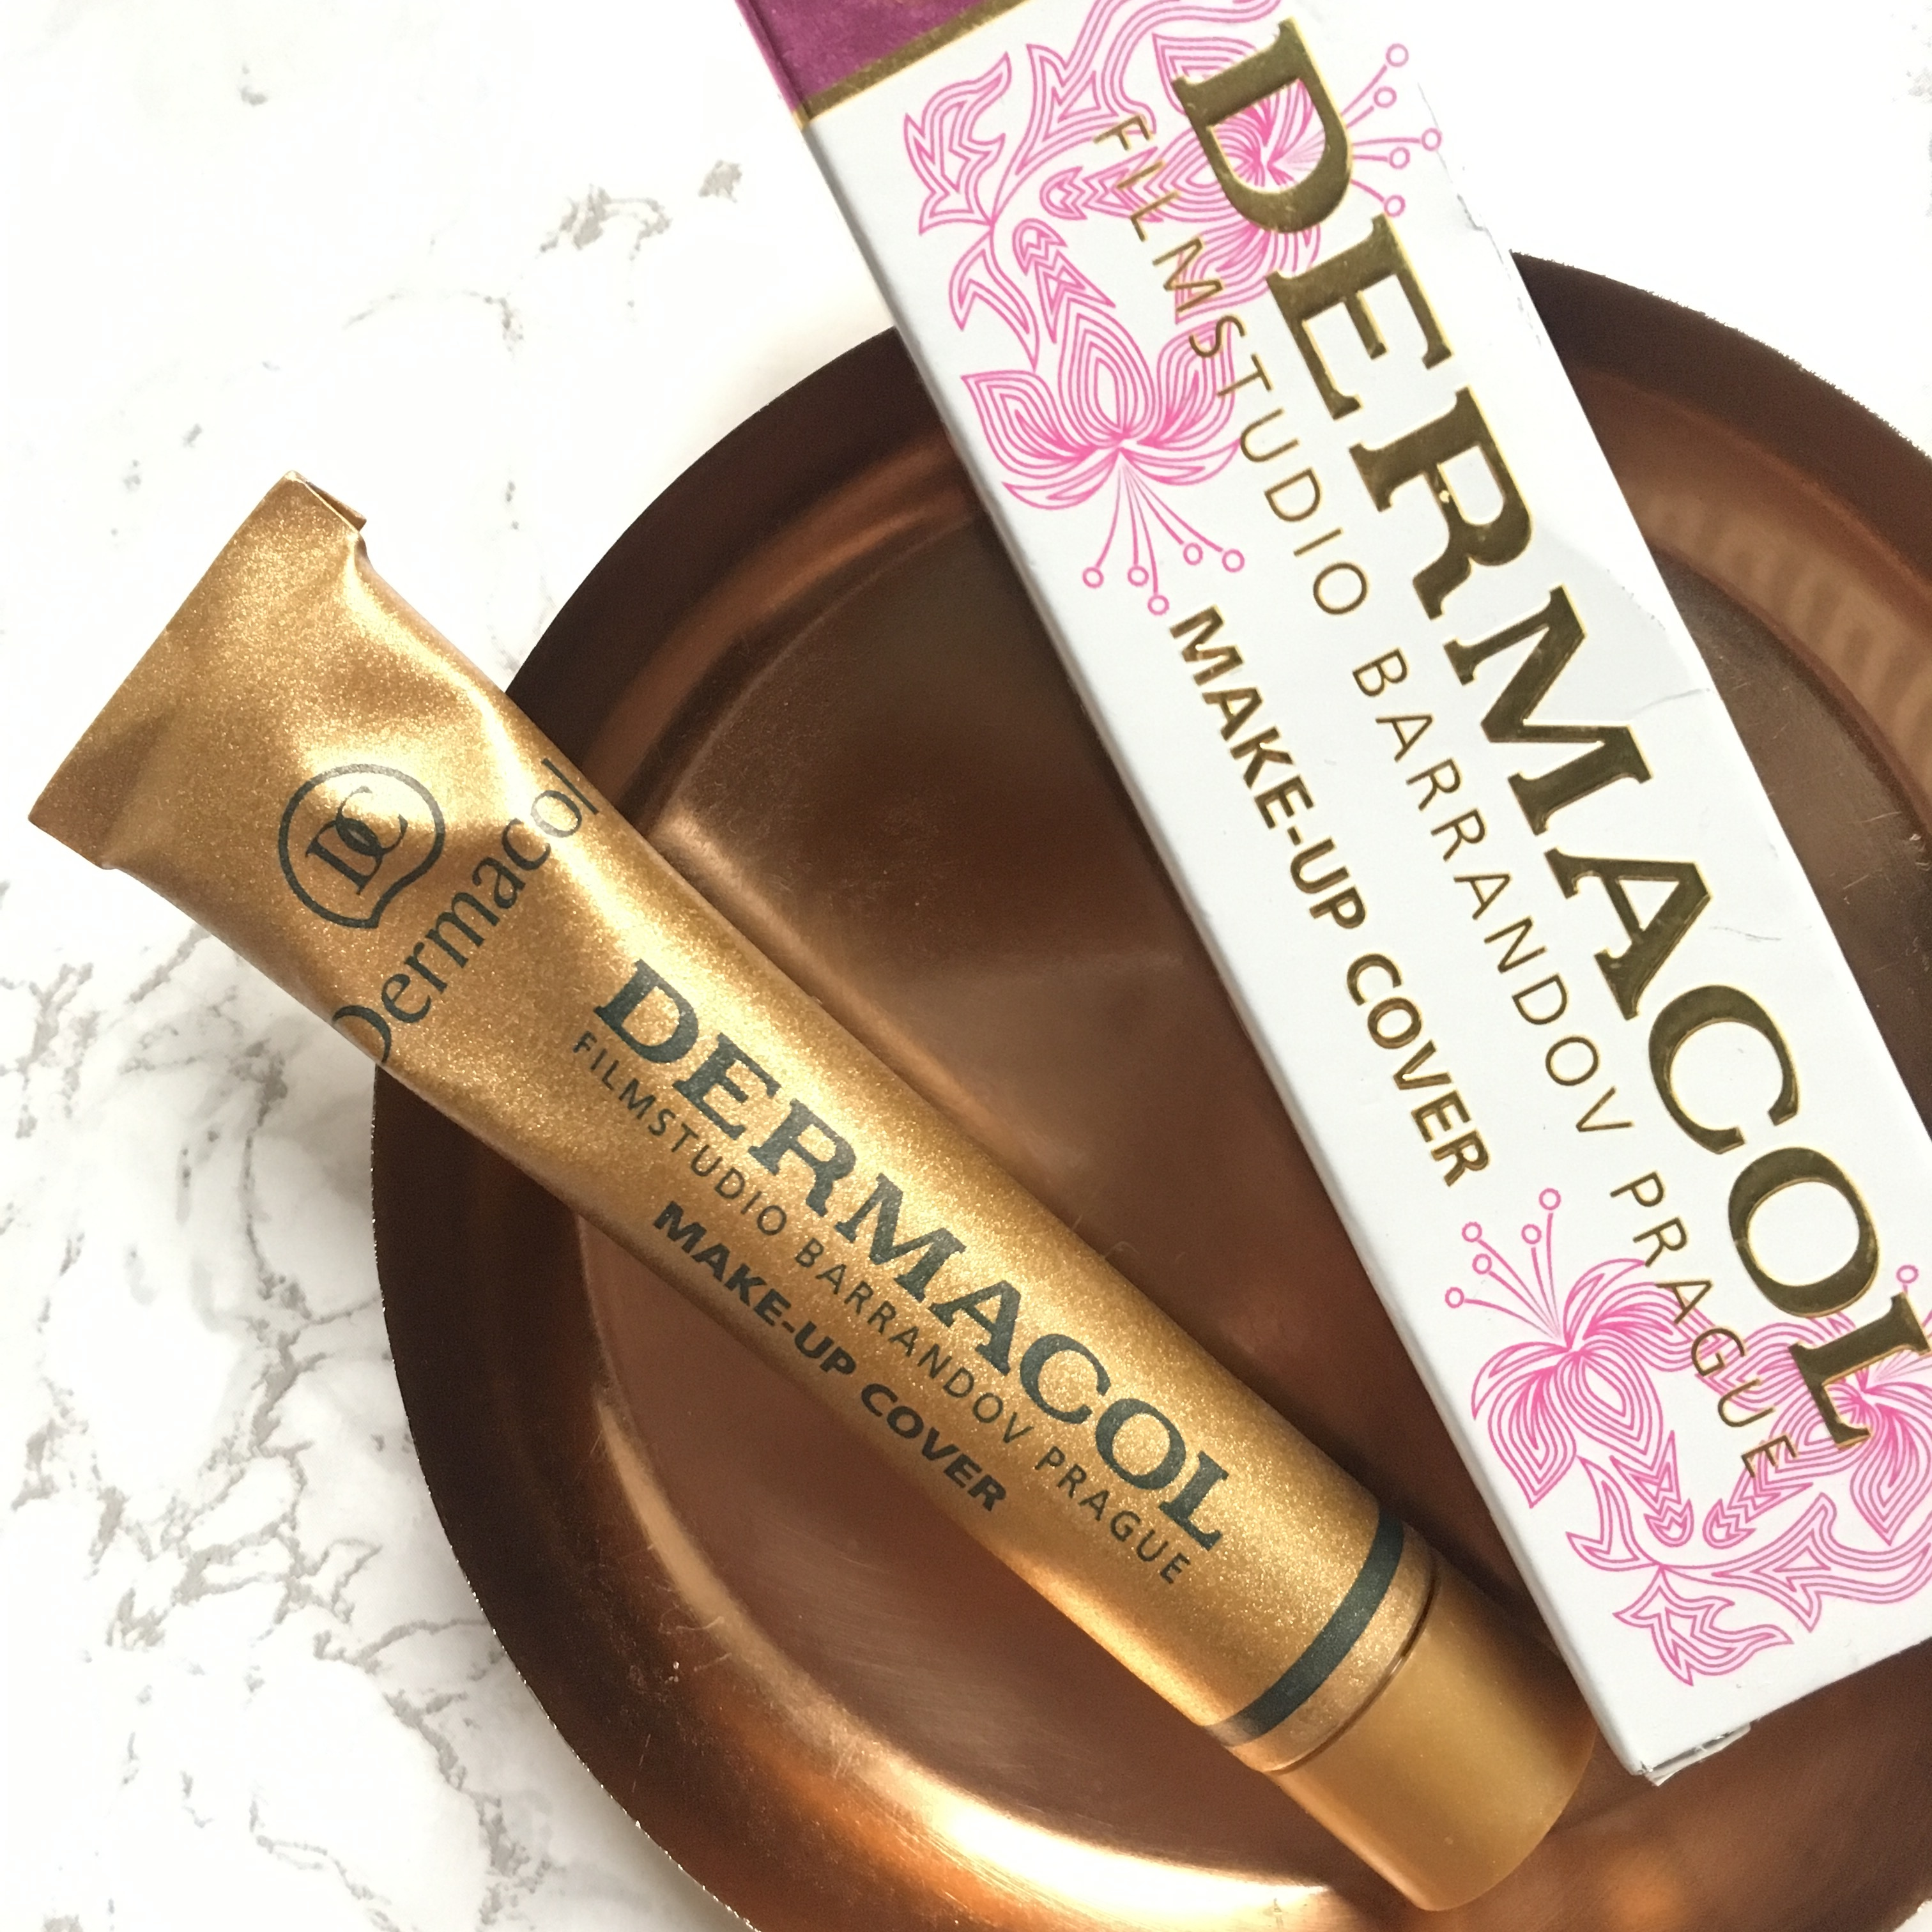 Dermacol Packaging